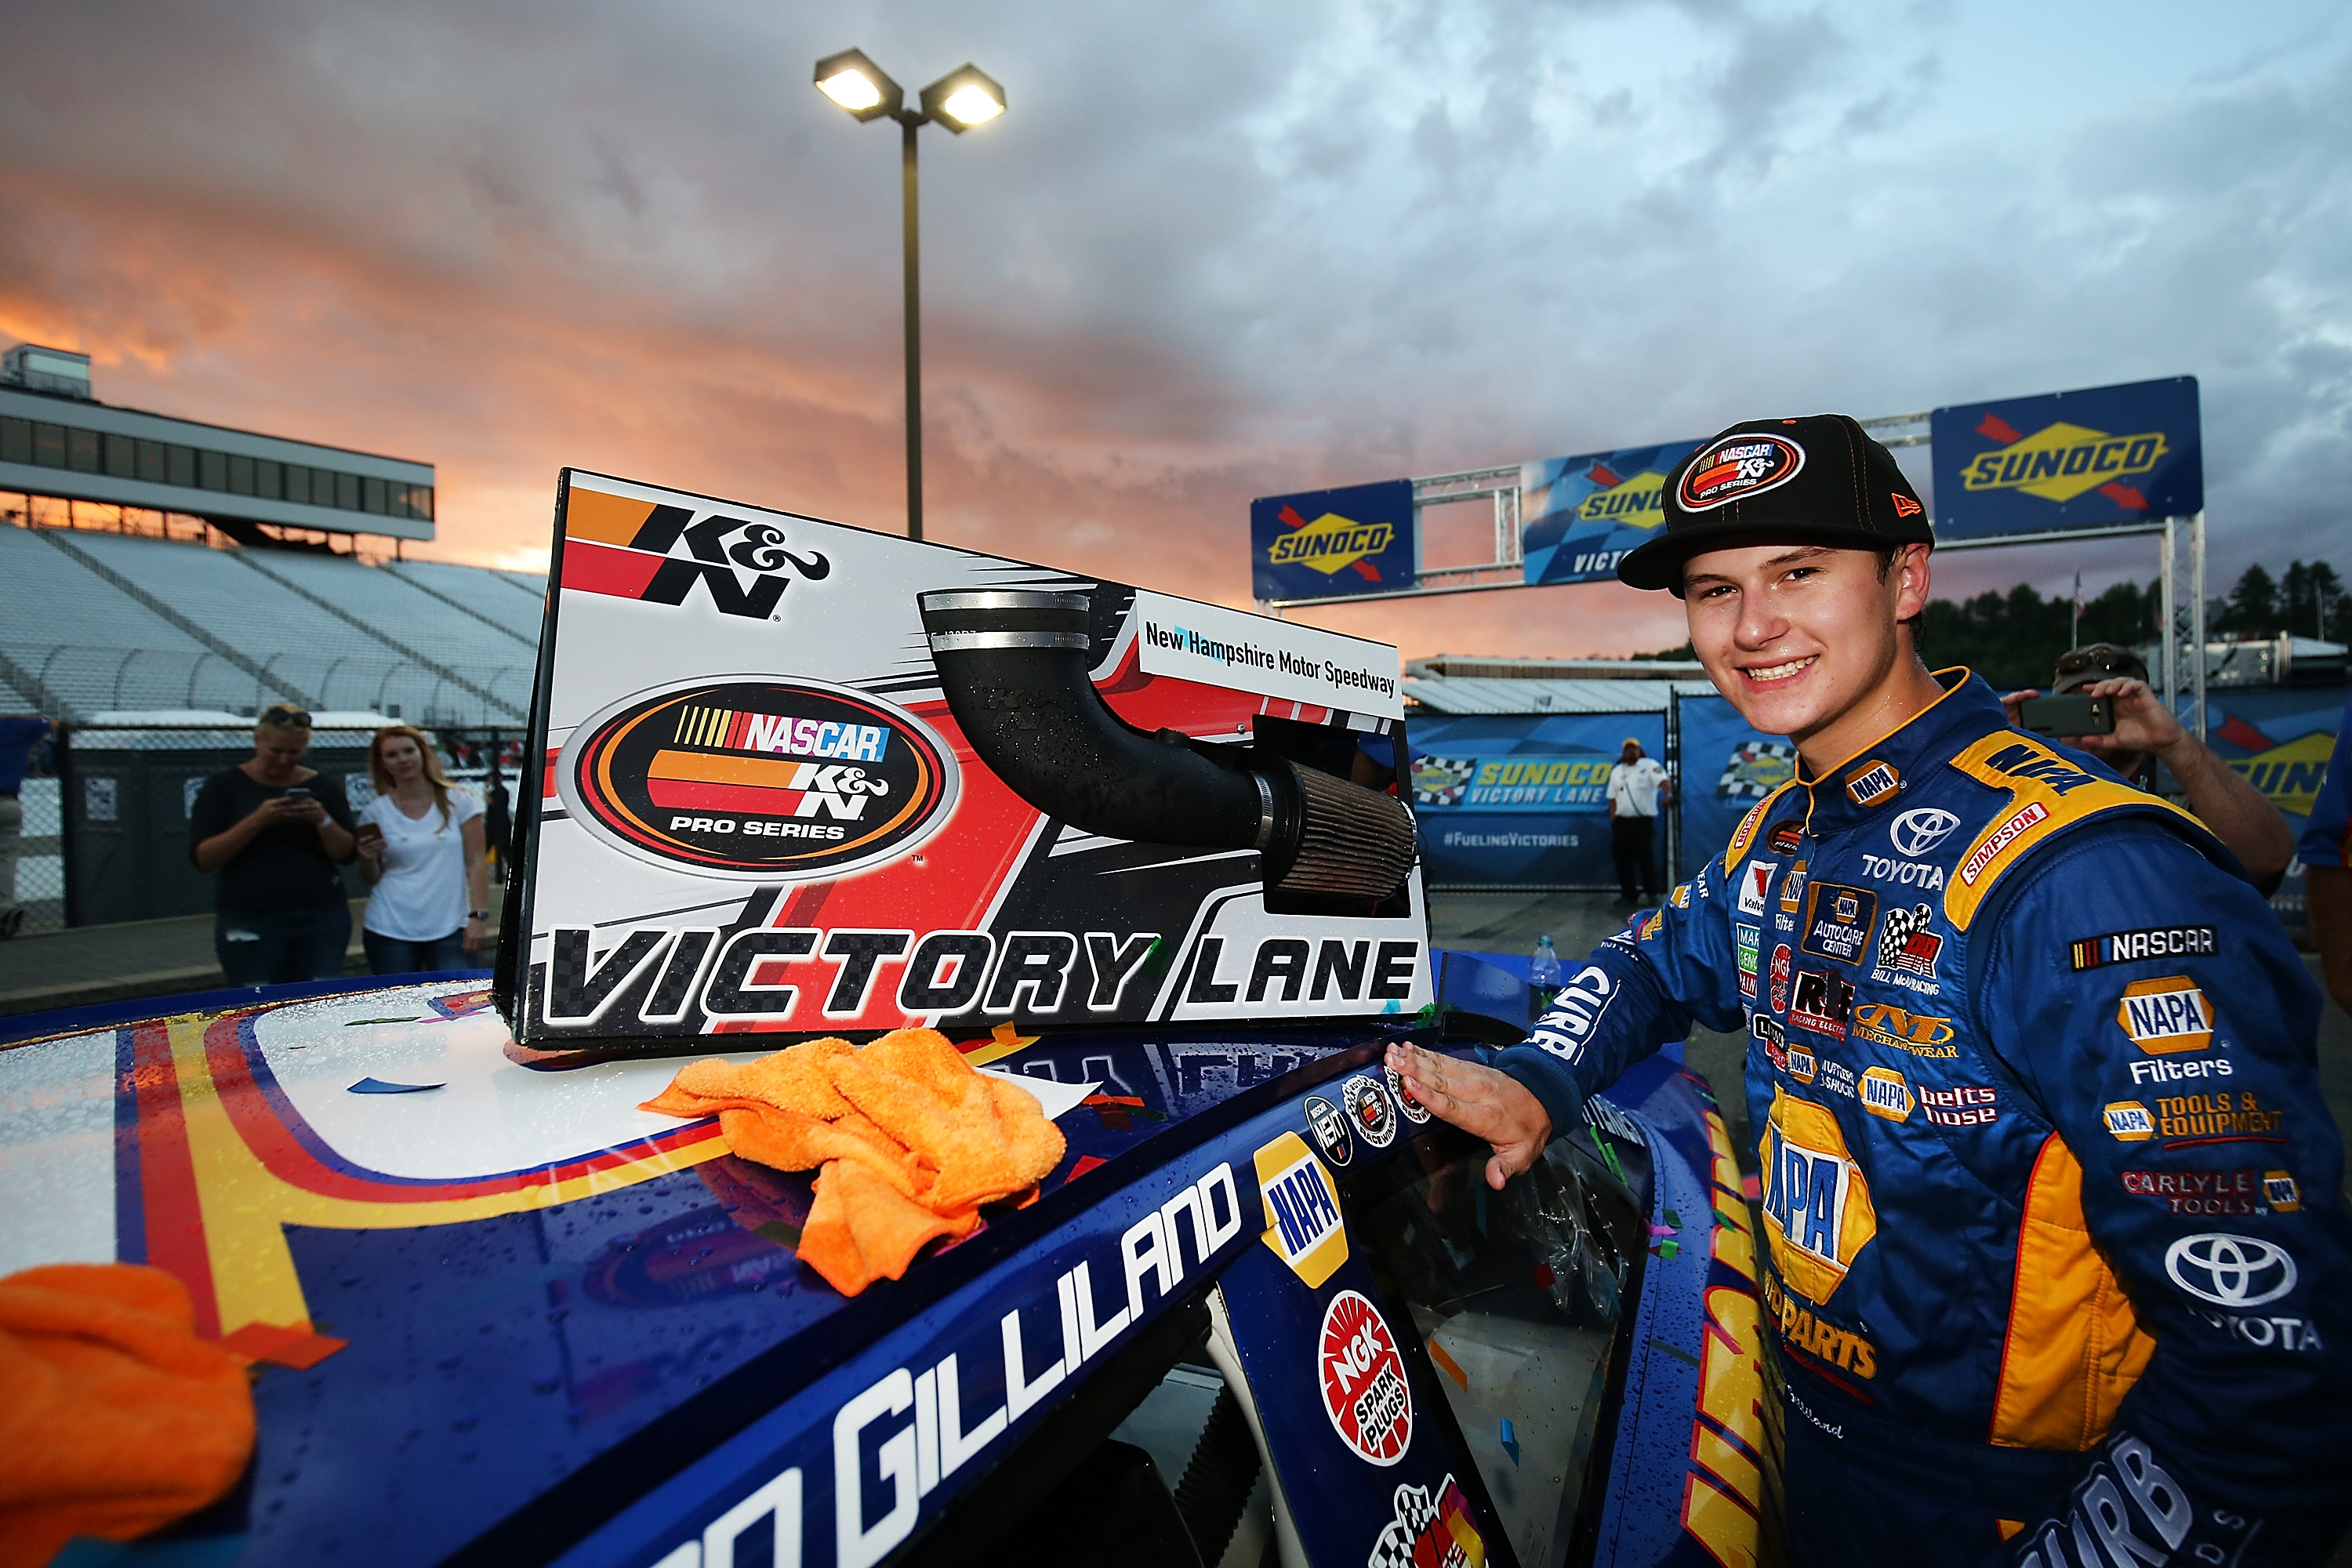 Todd Gilliland Captures Second Win of K&N Pro Series East Season with Win at the Magic Mile